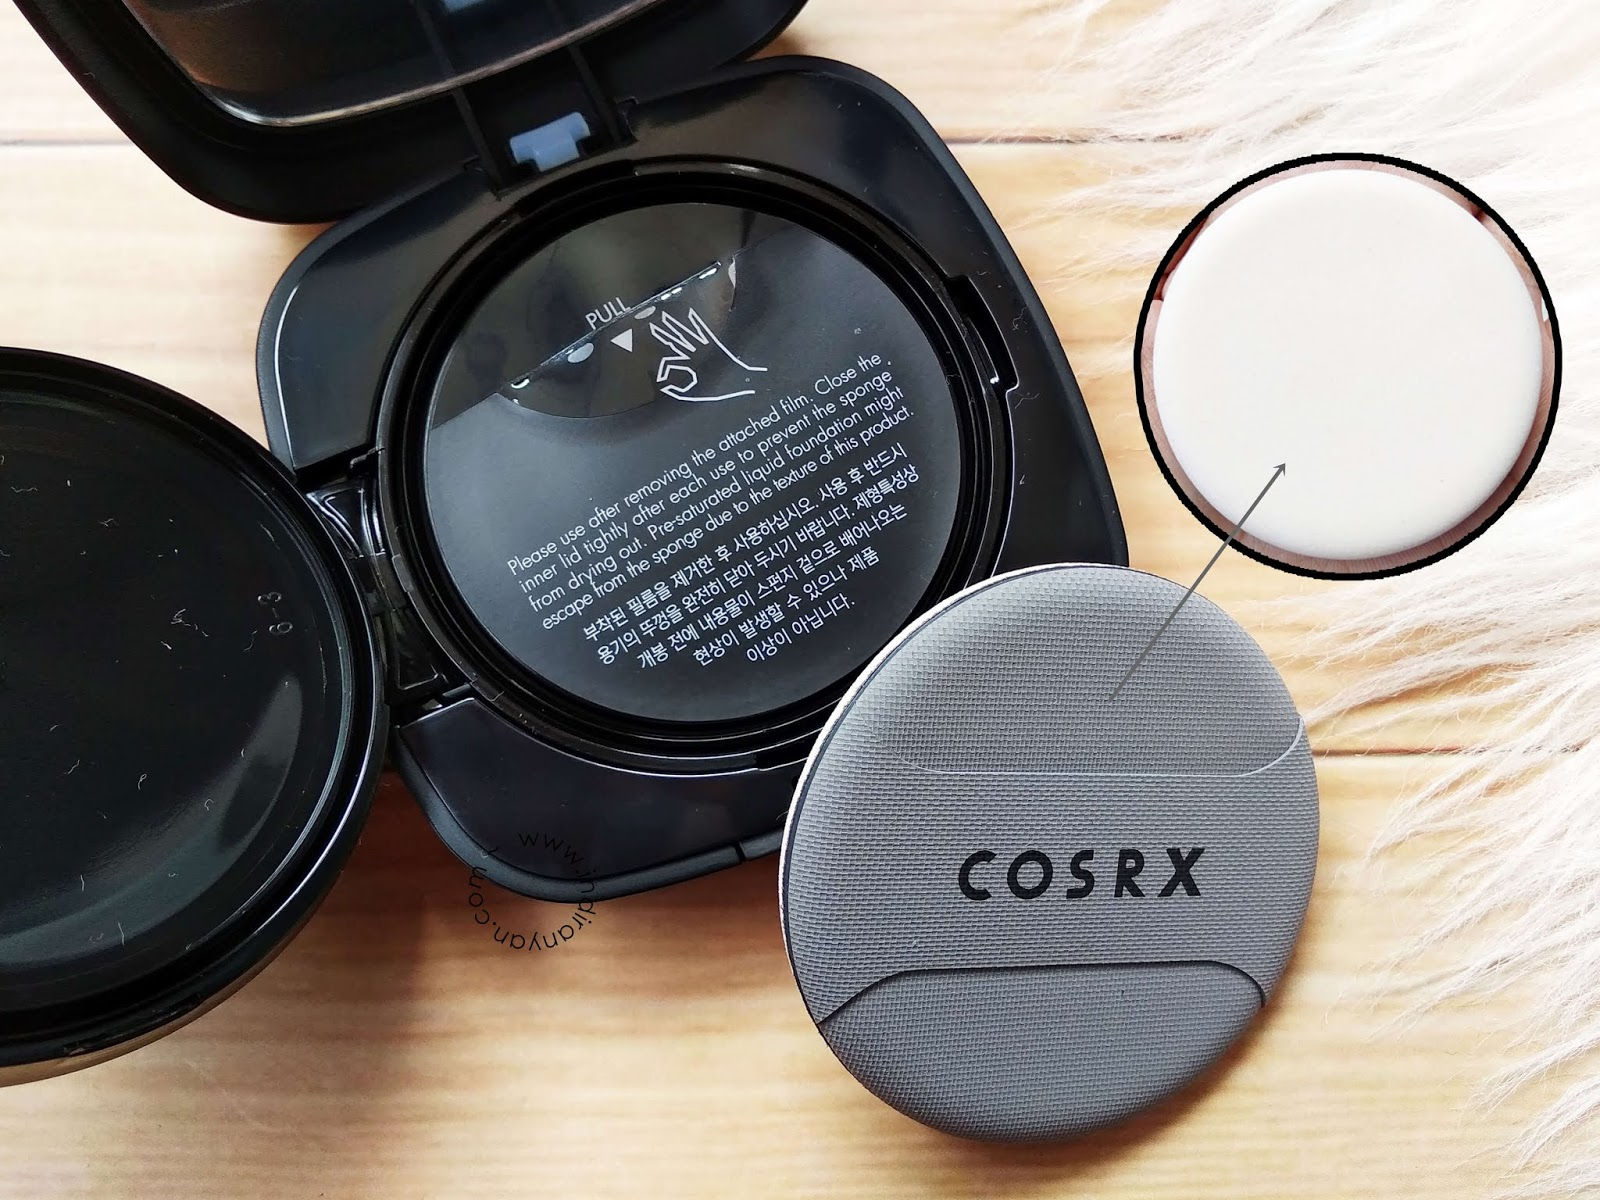 cosrx-blemish-cover-cushion, review-cushion-cosrx